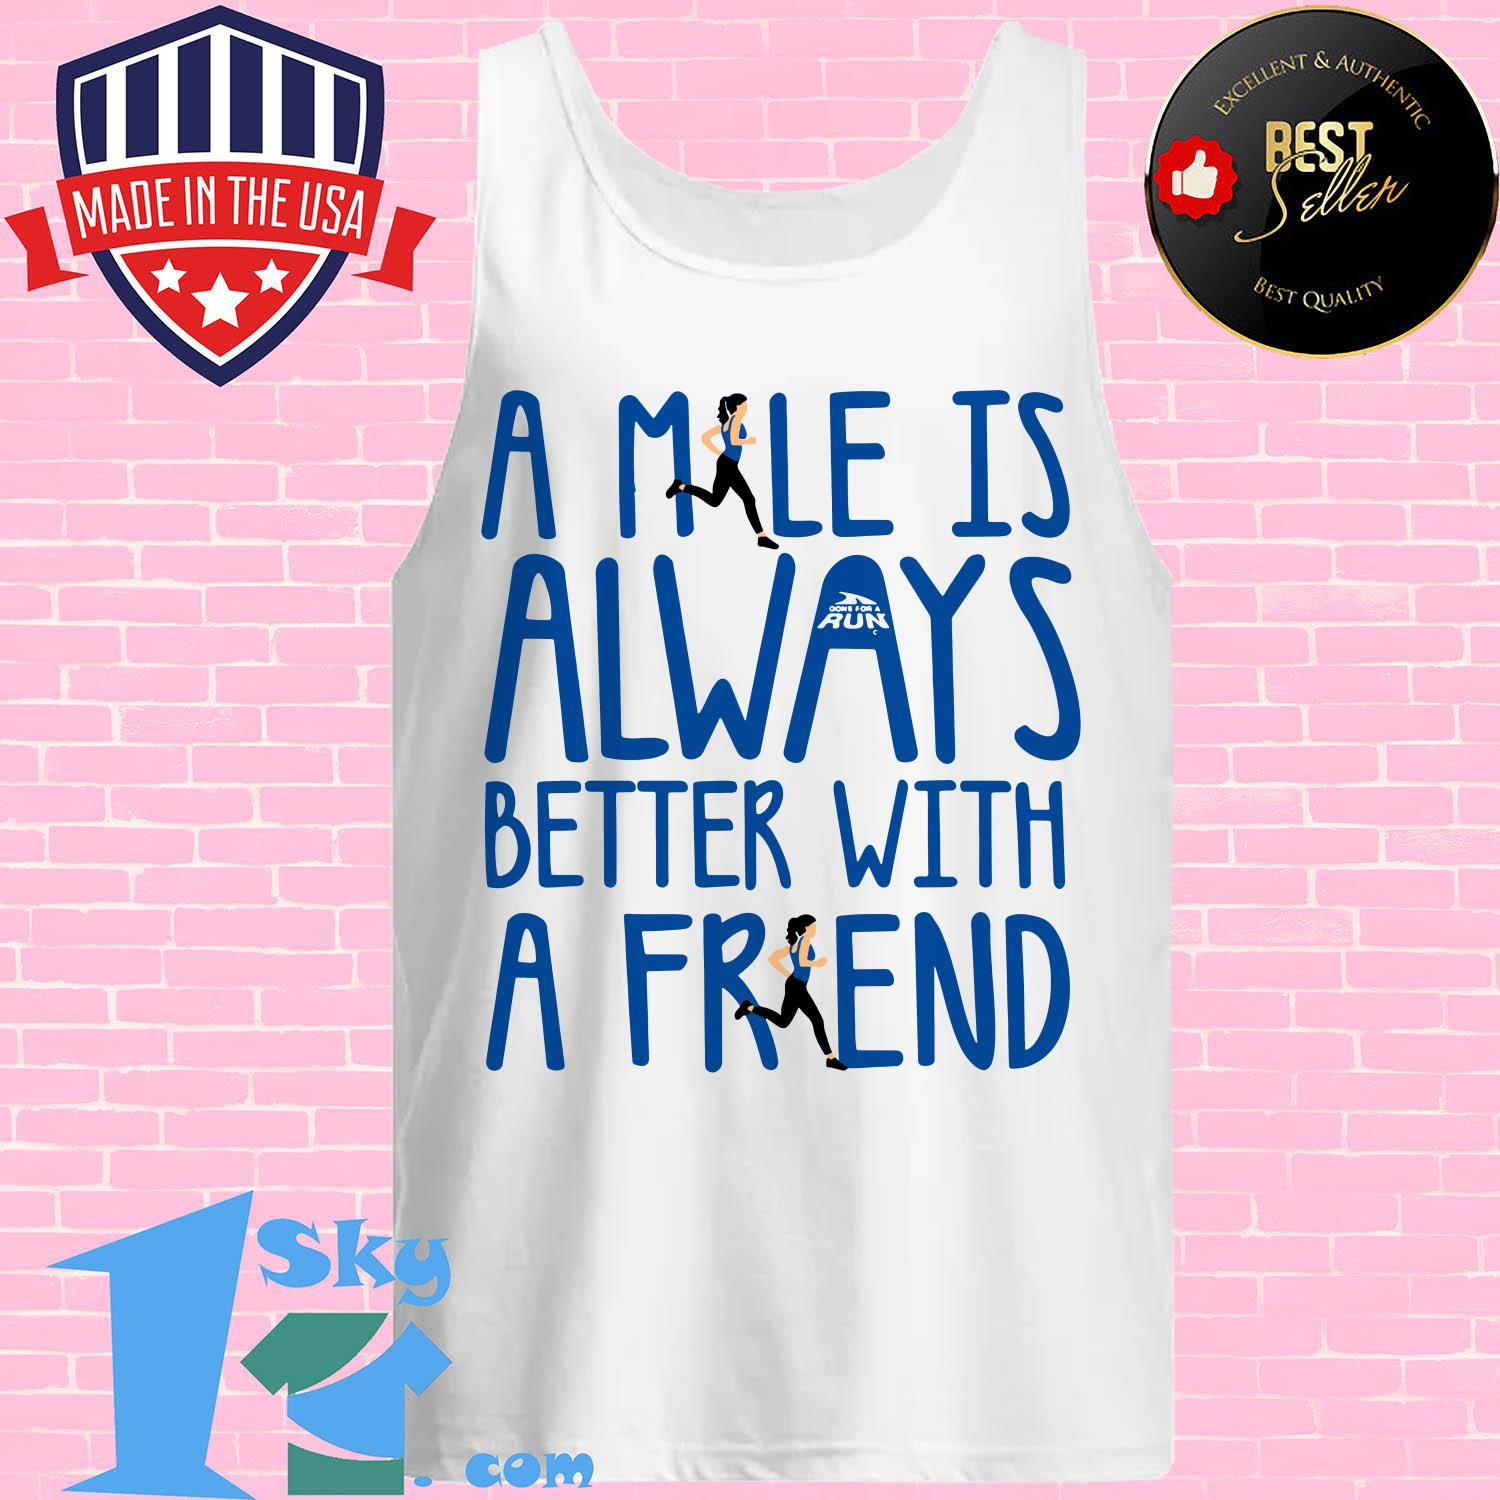 a mile is always better with a friends tank top - A mile is always better with a friends shirt